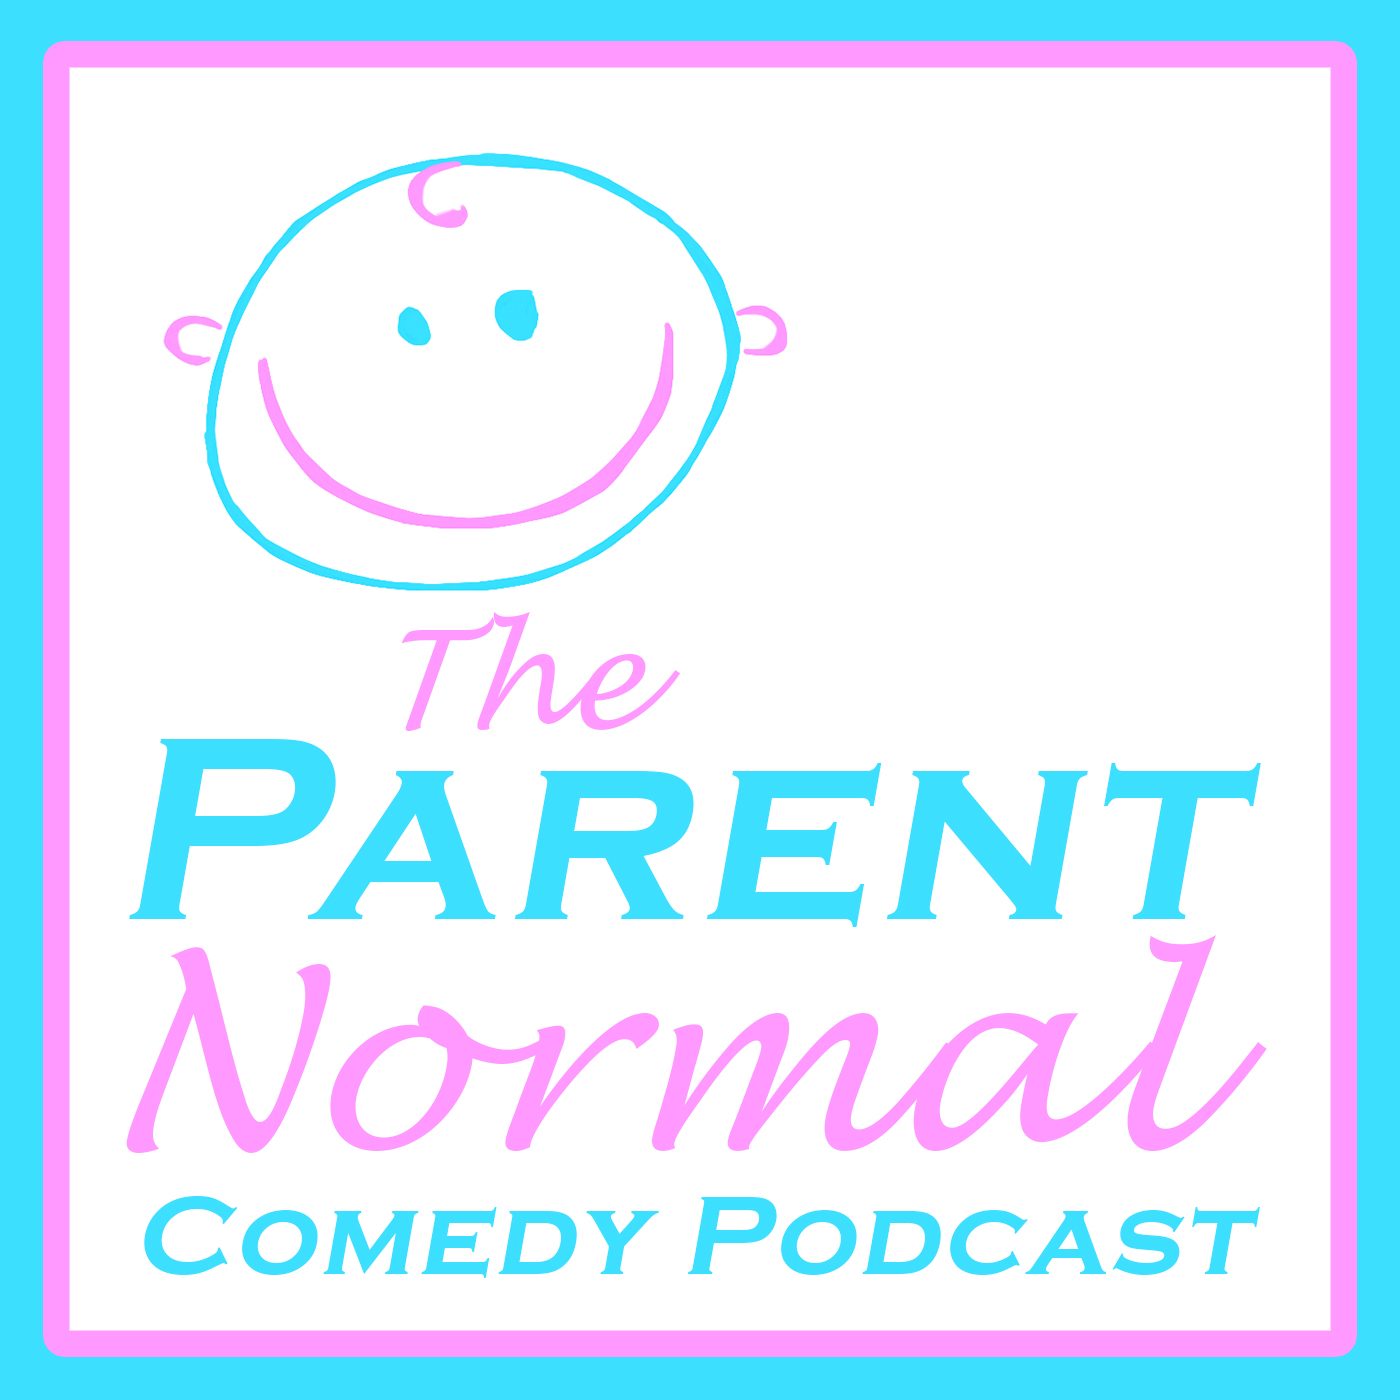 The ParentNormal Comedy Podcast: An Imperfect Parenting and Family Humor Show